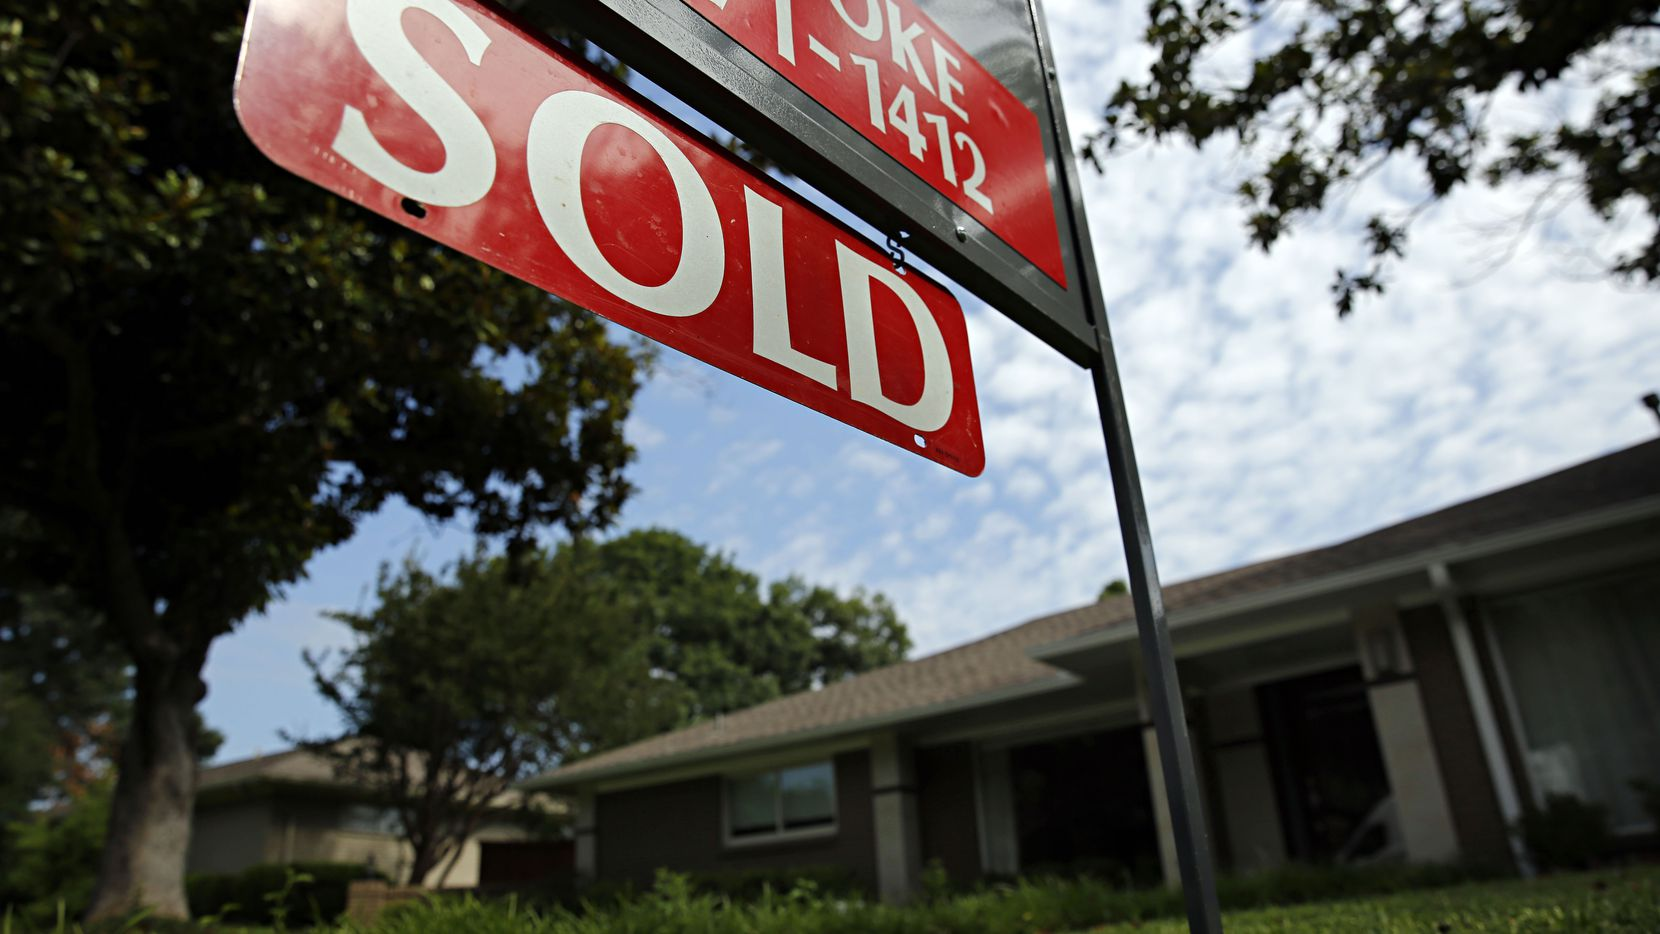 Dallas-area home prices were up 6.4 percent in February from a year earlier, according to Case-Shiller.